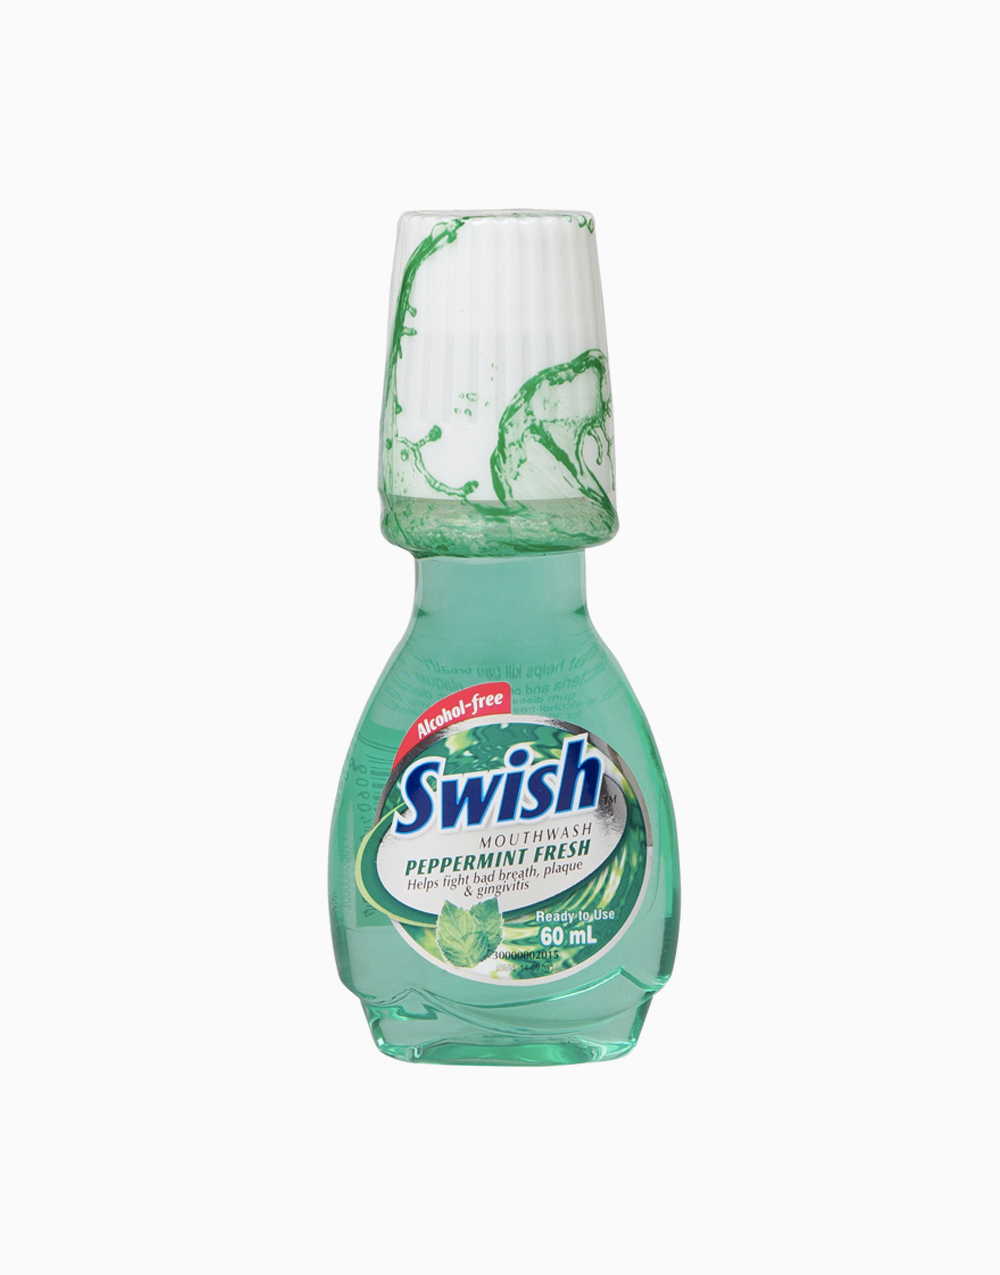 Swish Mouthwash (60ml) by Swish | Peppermint Fresh